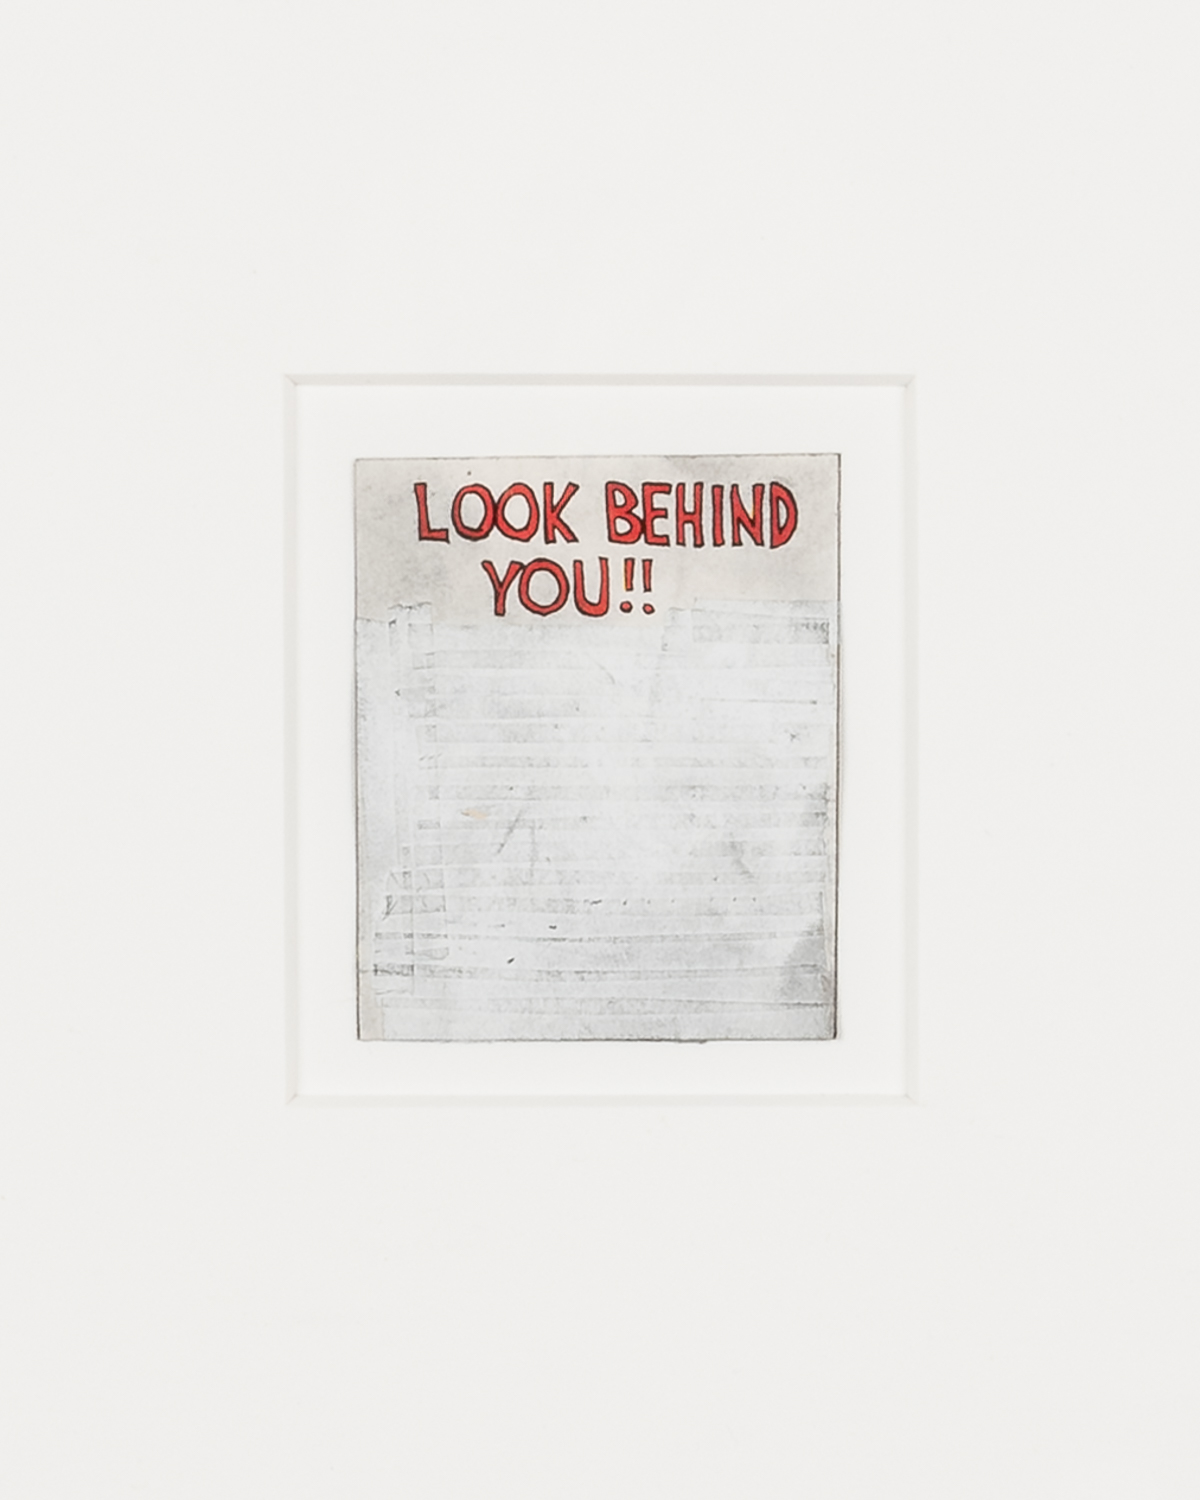 Tony Lewis  Untitled (Look Behind You!!) , (Detail) 2017 Pencil, graphite powder and correction fluid on comic book cutout 2 1/8h x 1 3/4w in TL491